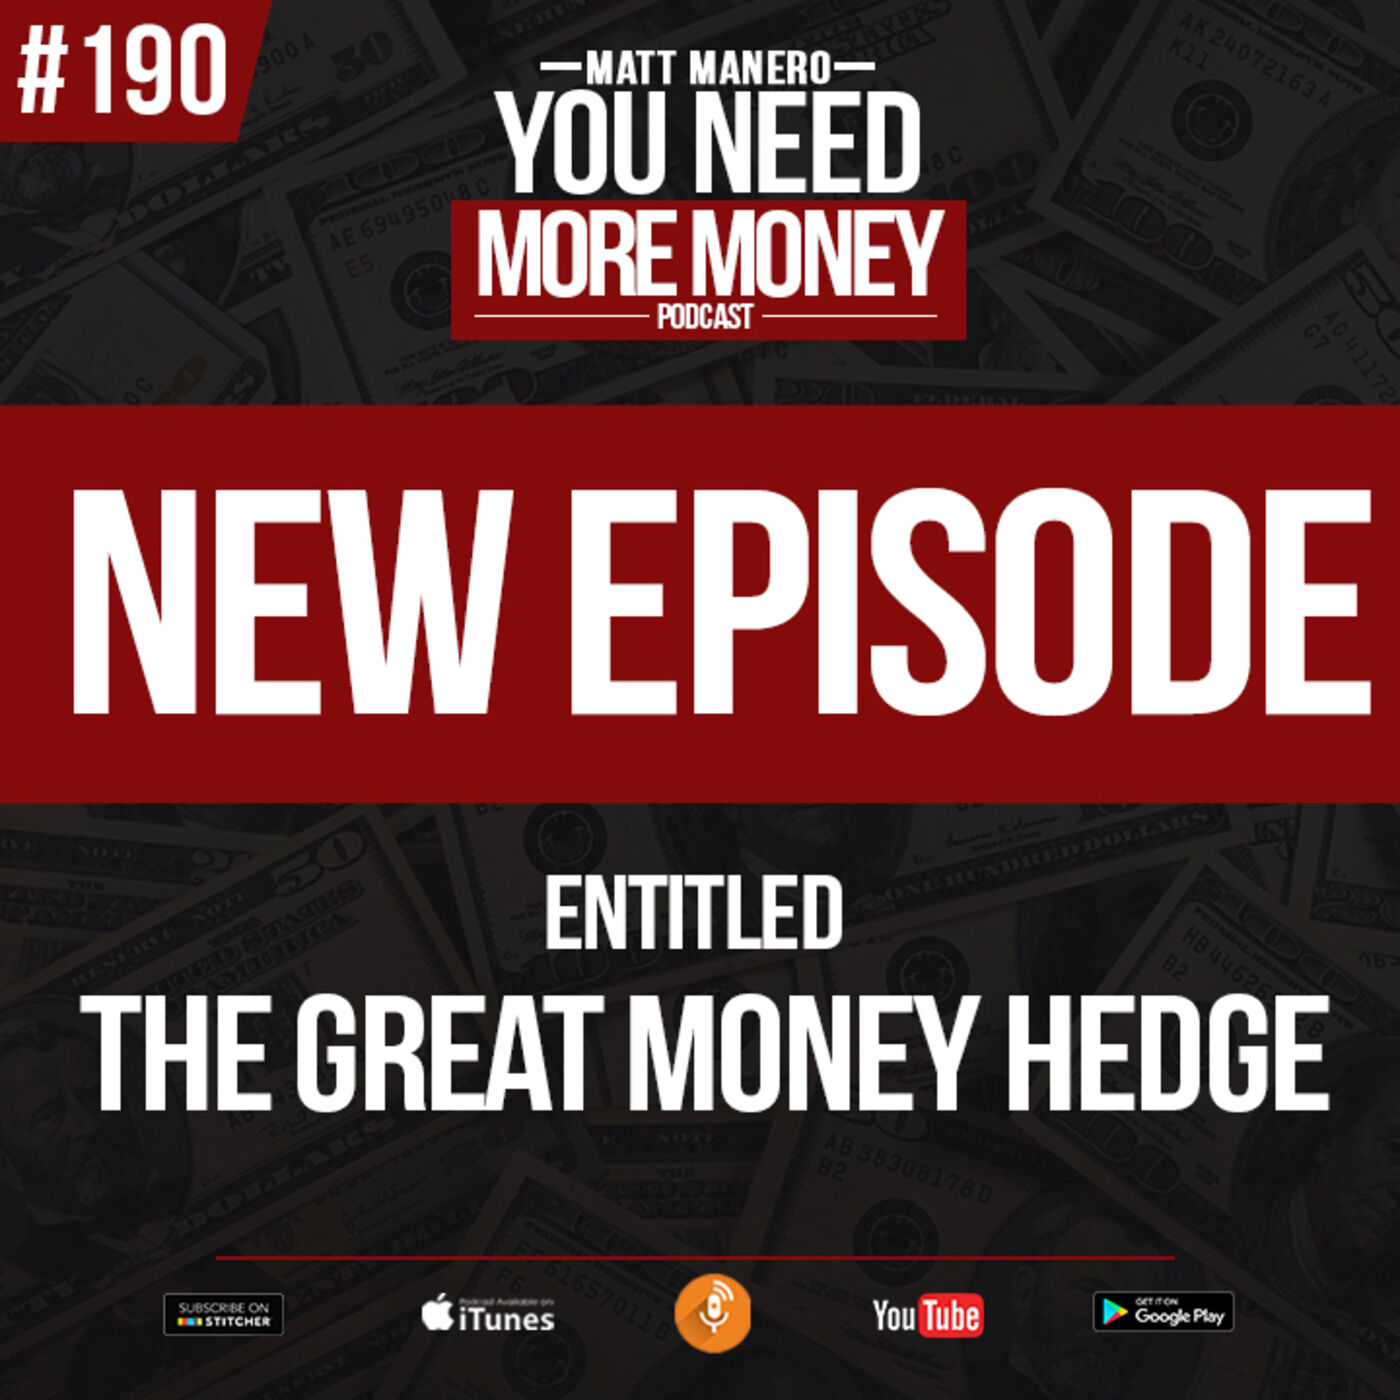 Episode #190 INCREDIBLE YET SIMPLE $$ STRATEGY with Matt Manero